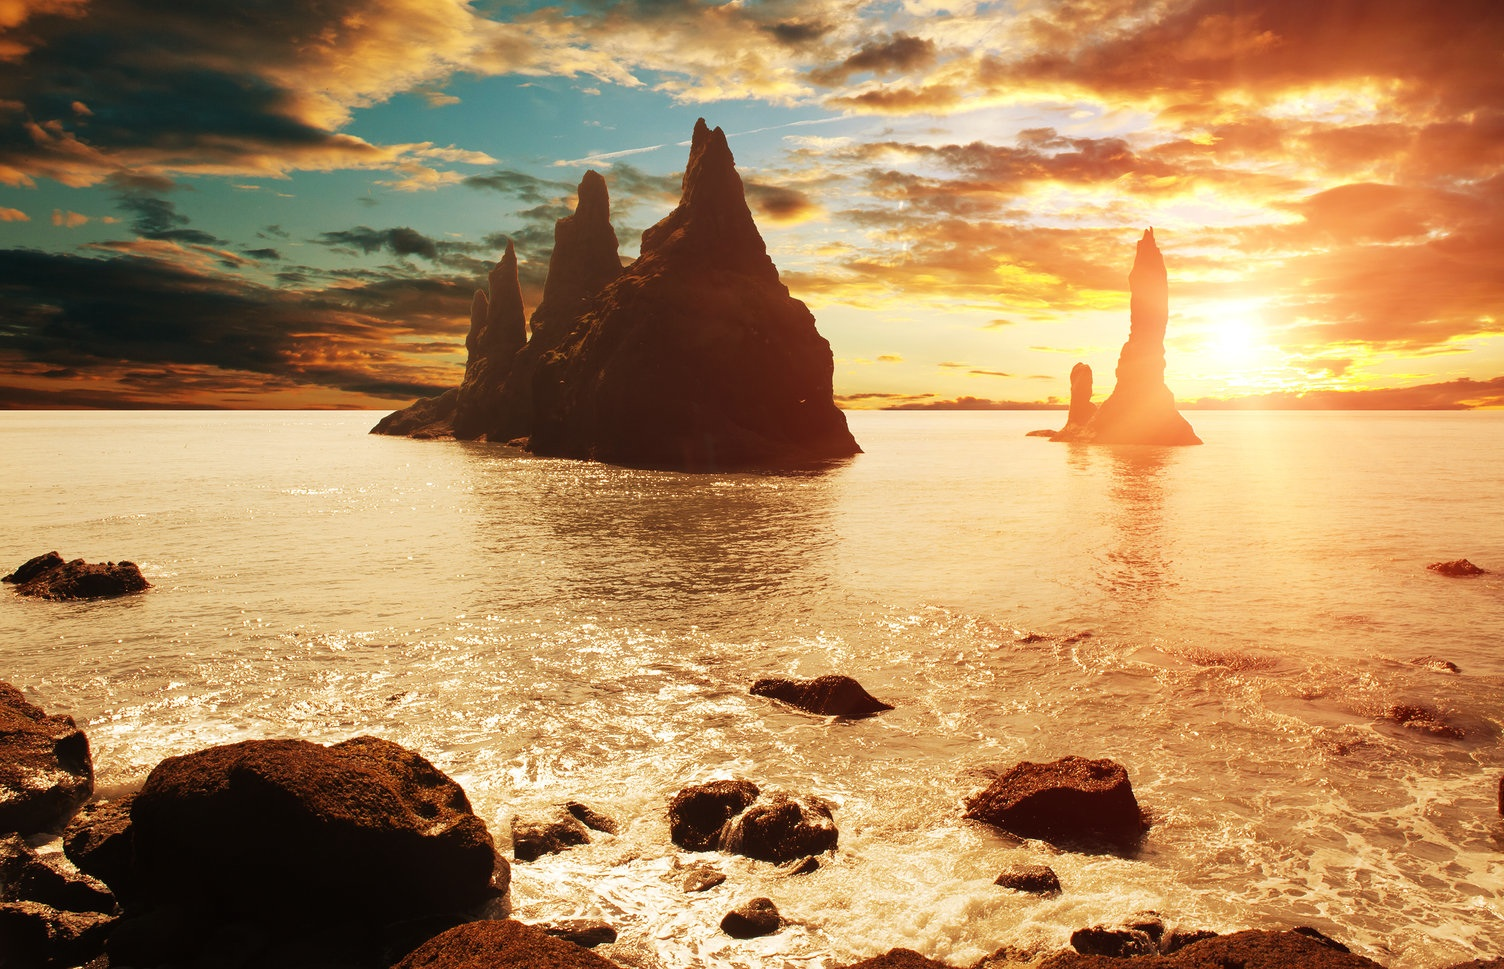 Summer sunset at the rock promontories of Reynisdrangar, on Iceland's South Coast.